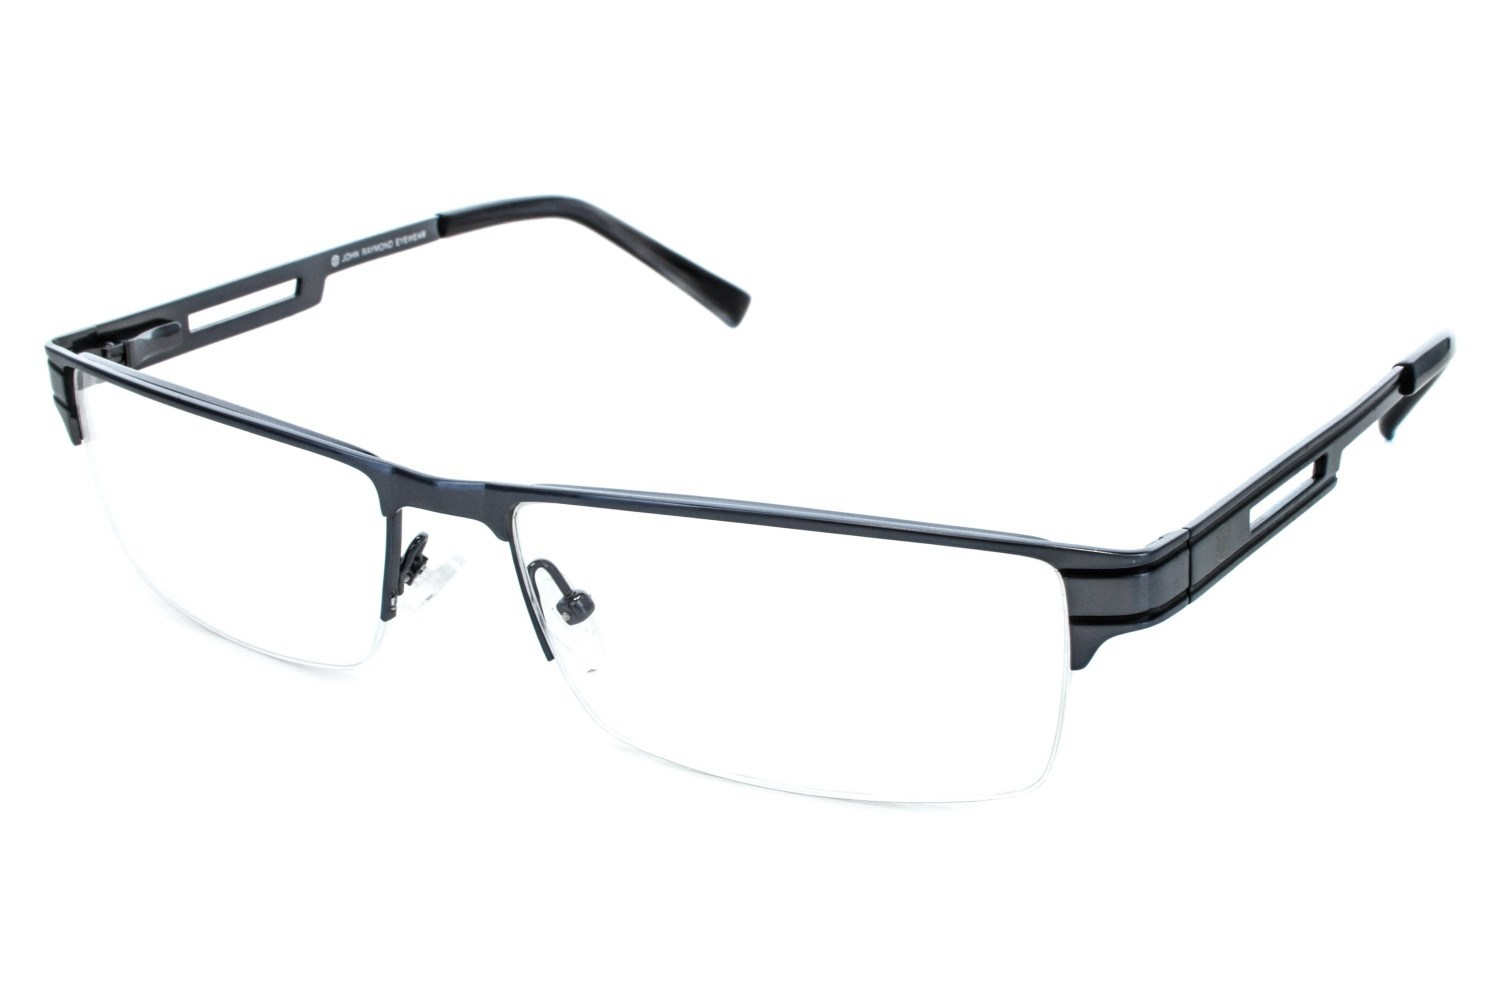 John Raymond Loft Prescription Eyeglasses Frames